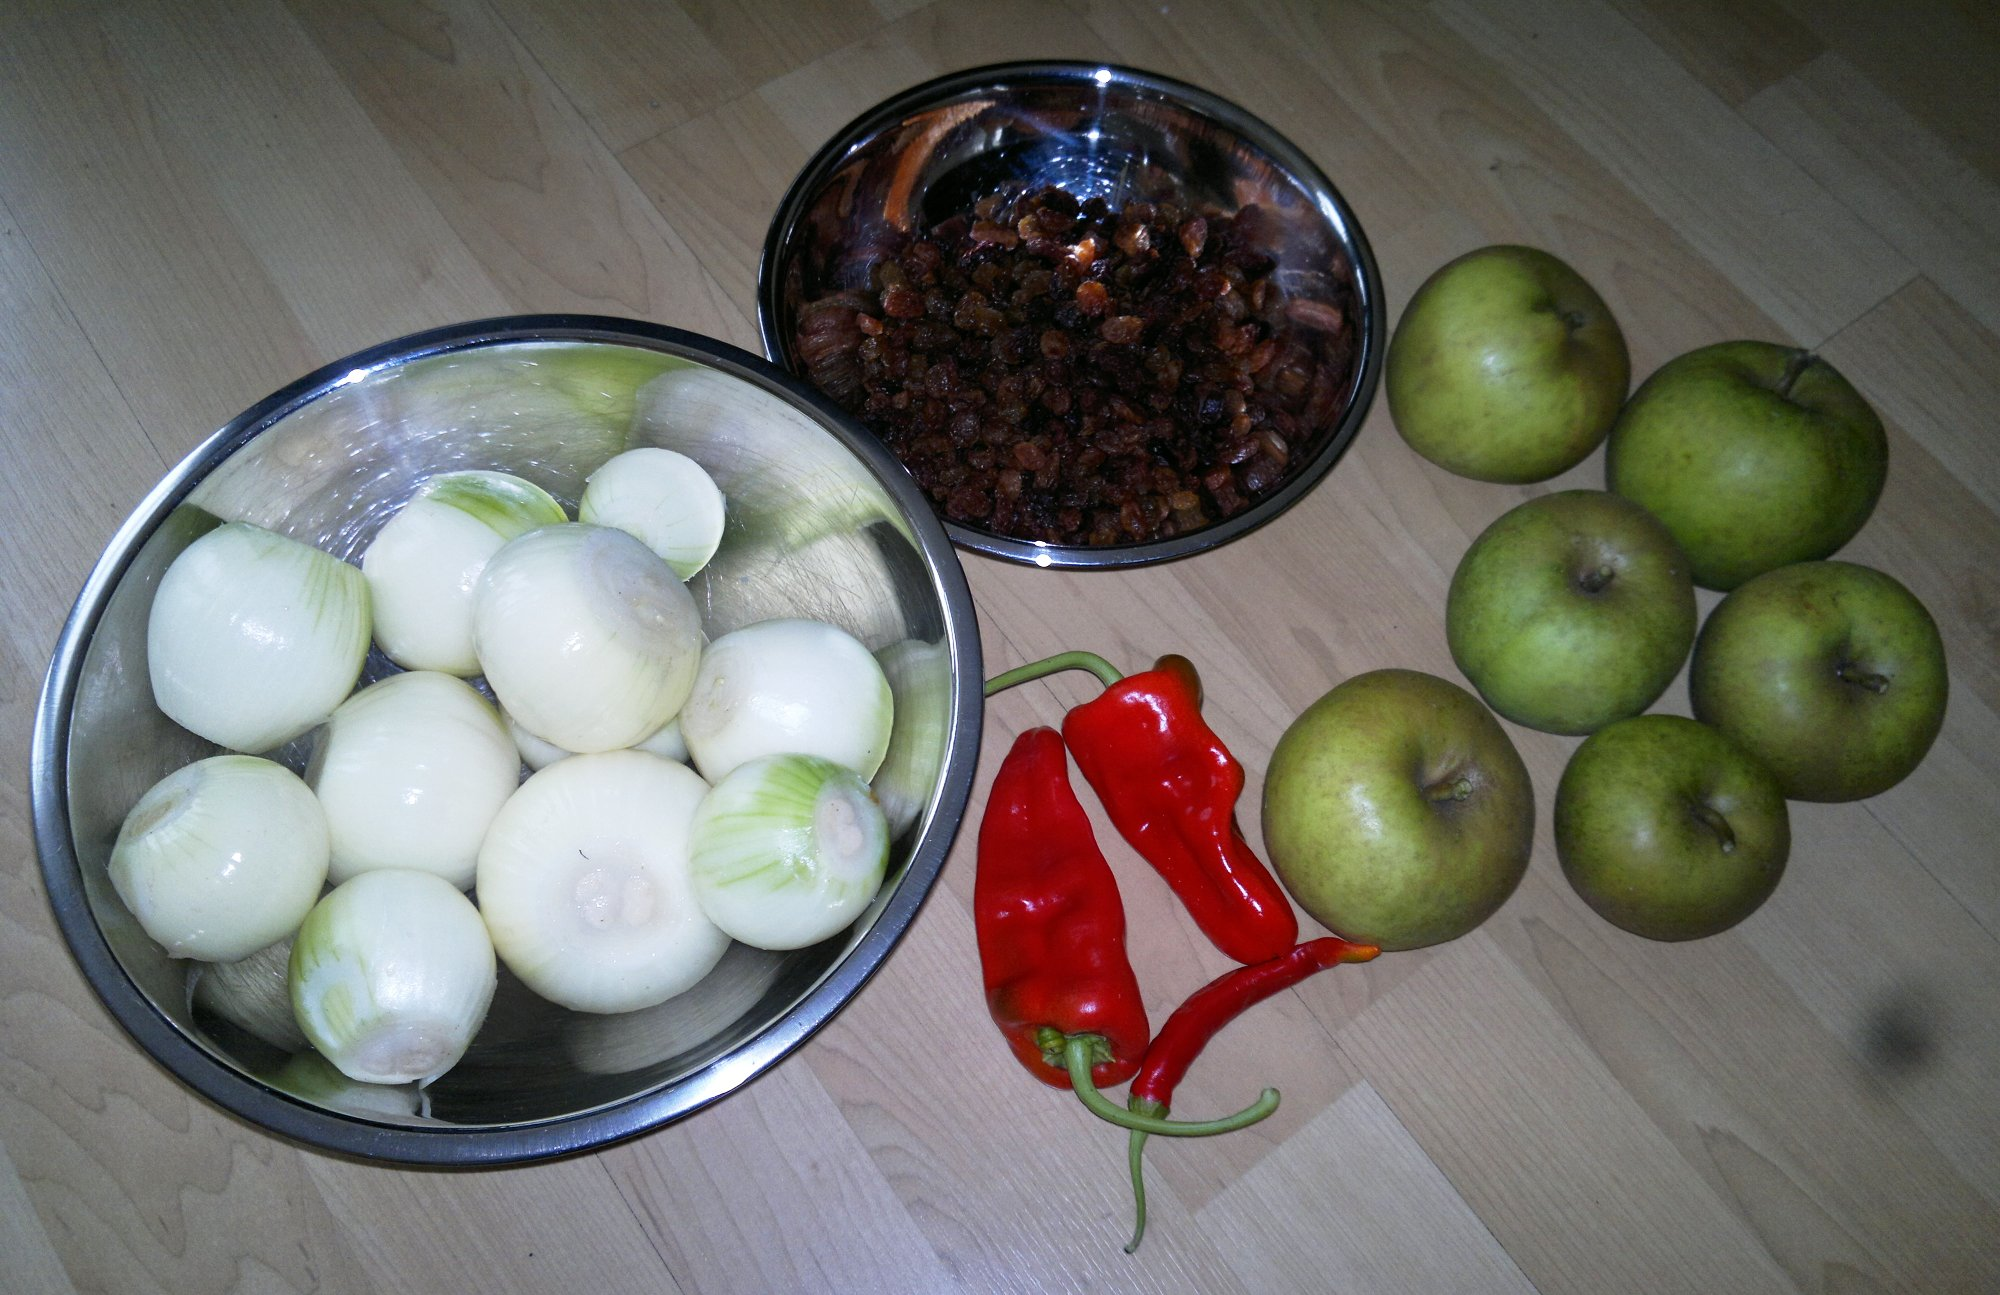 Other ingredients - apples, onions, sultanas, and red chillies